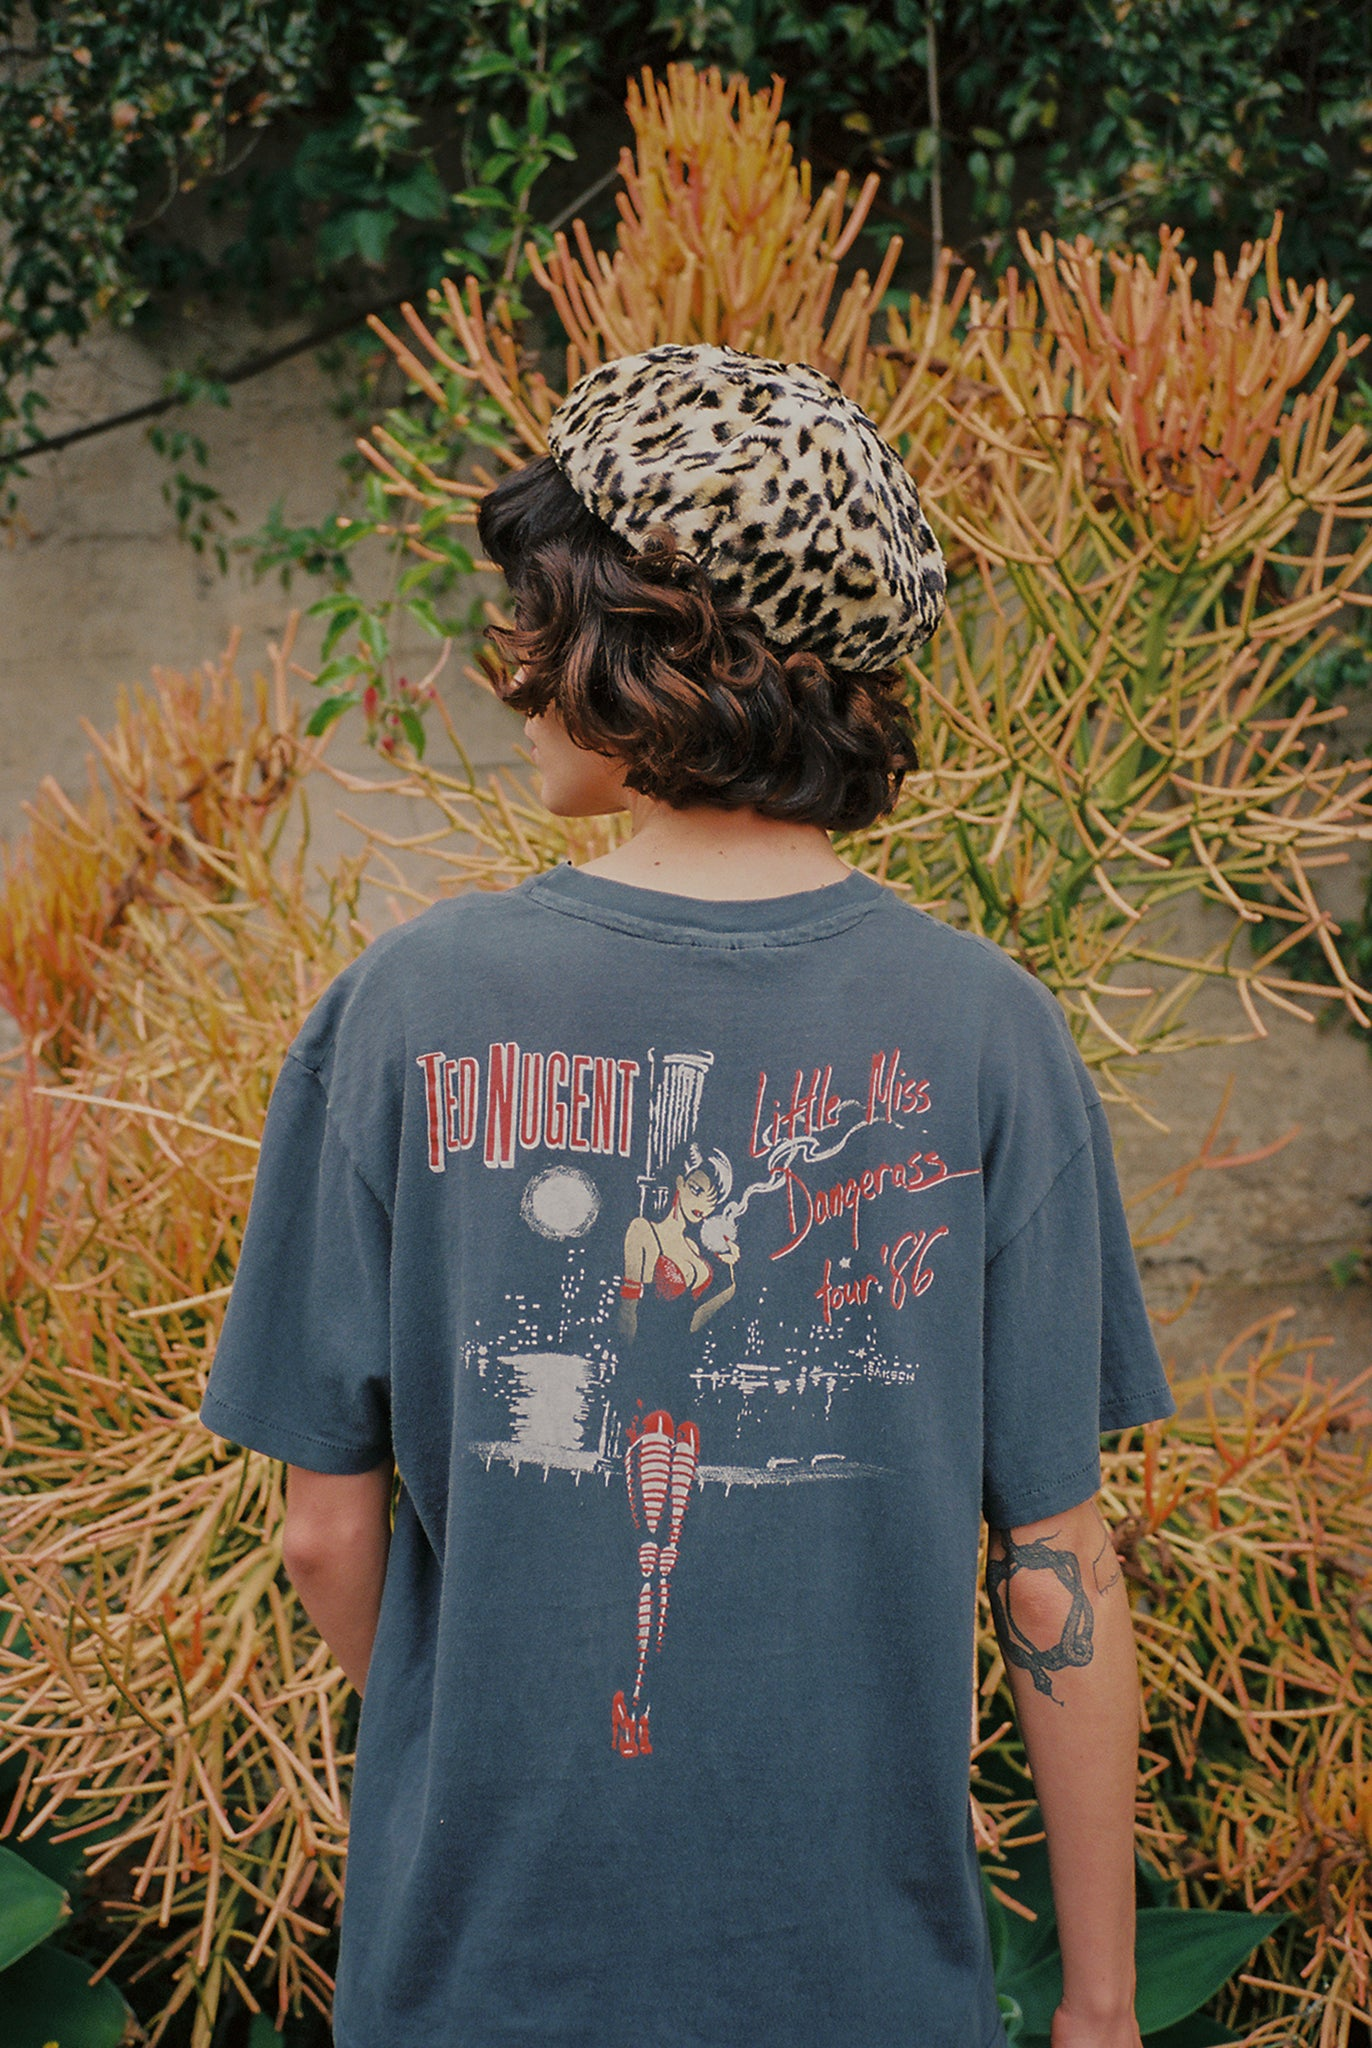 Vintage 1986 ted nugent little miss dangerous promotional tour tshirt